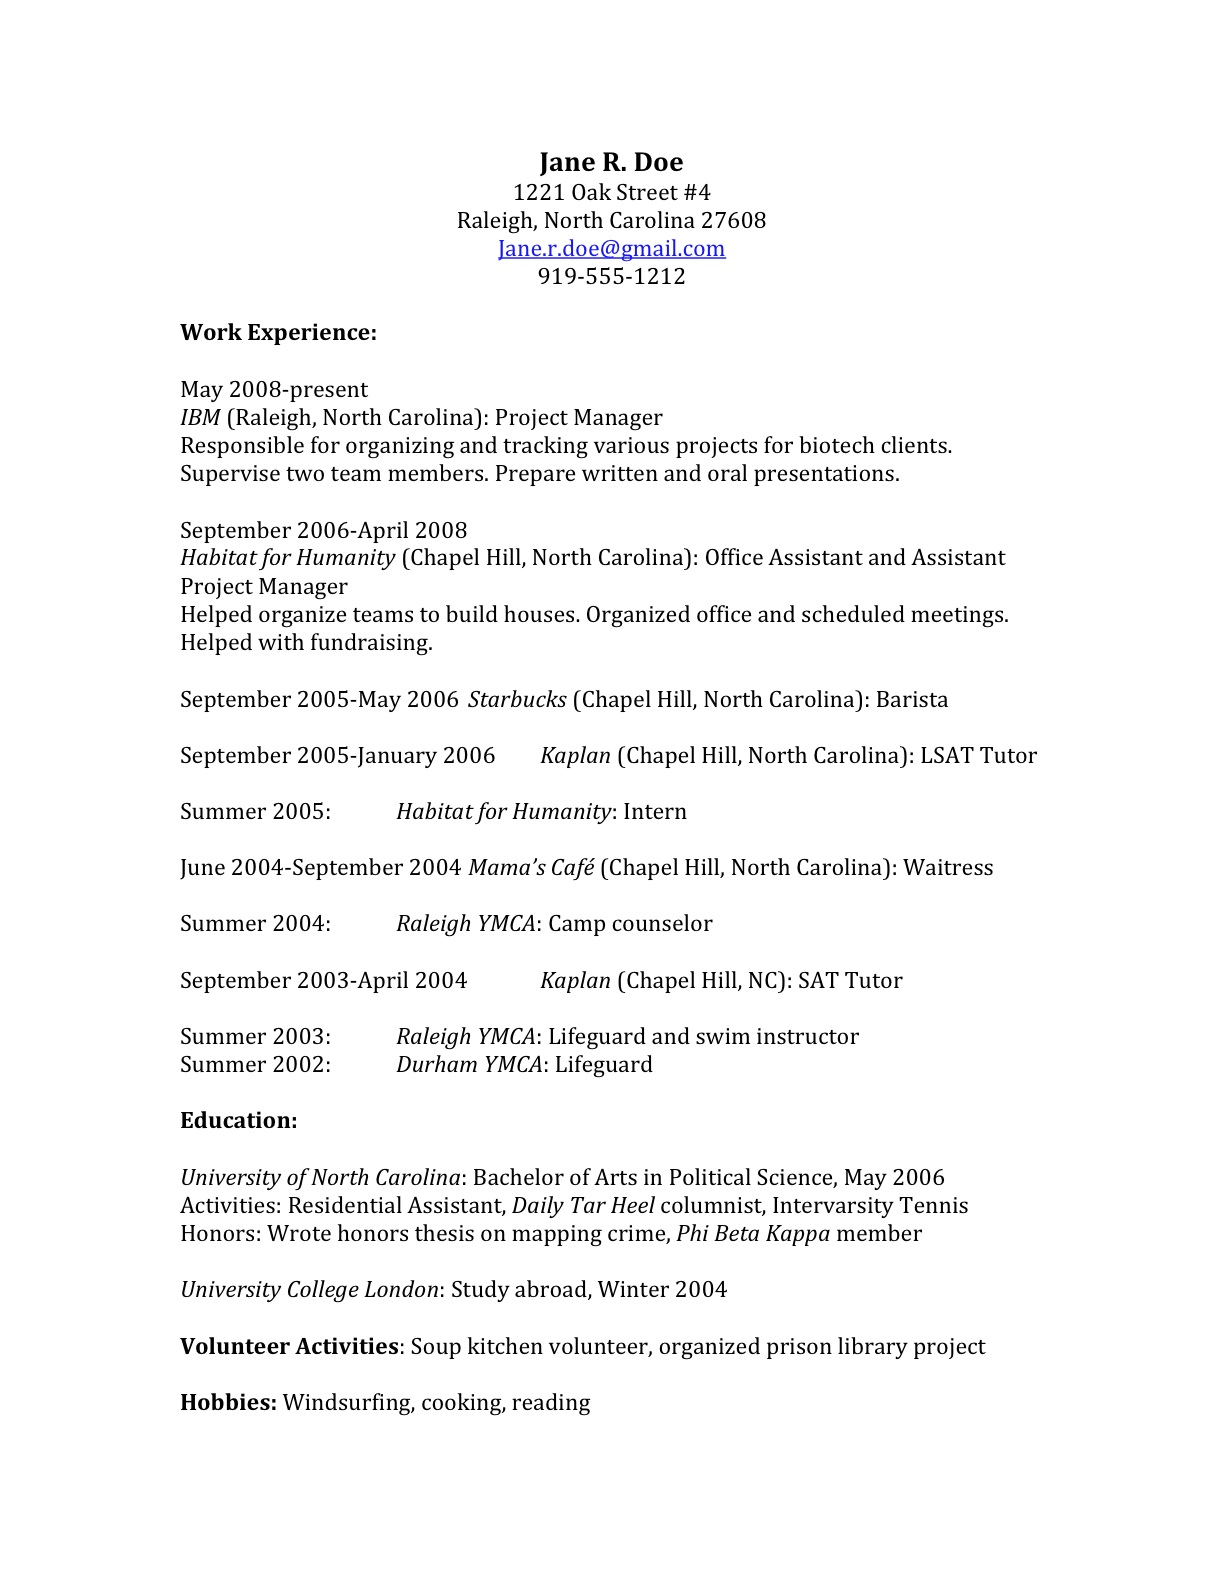 RESUMES - Tufts Student Services - Tufts University